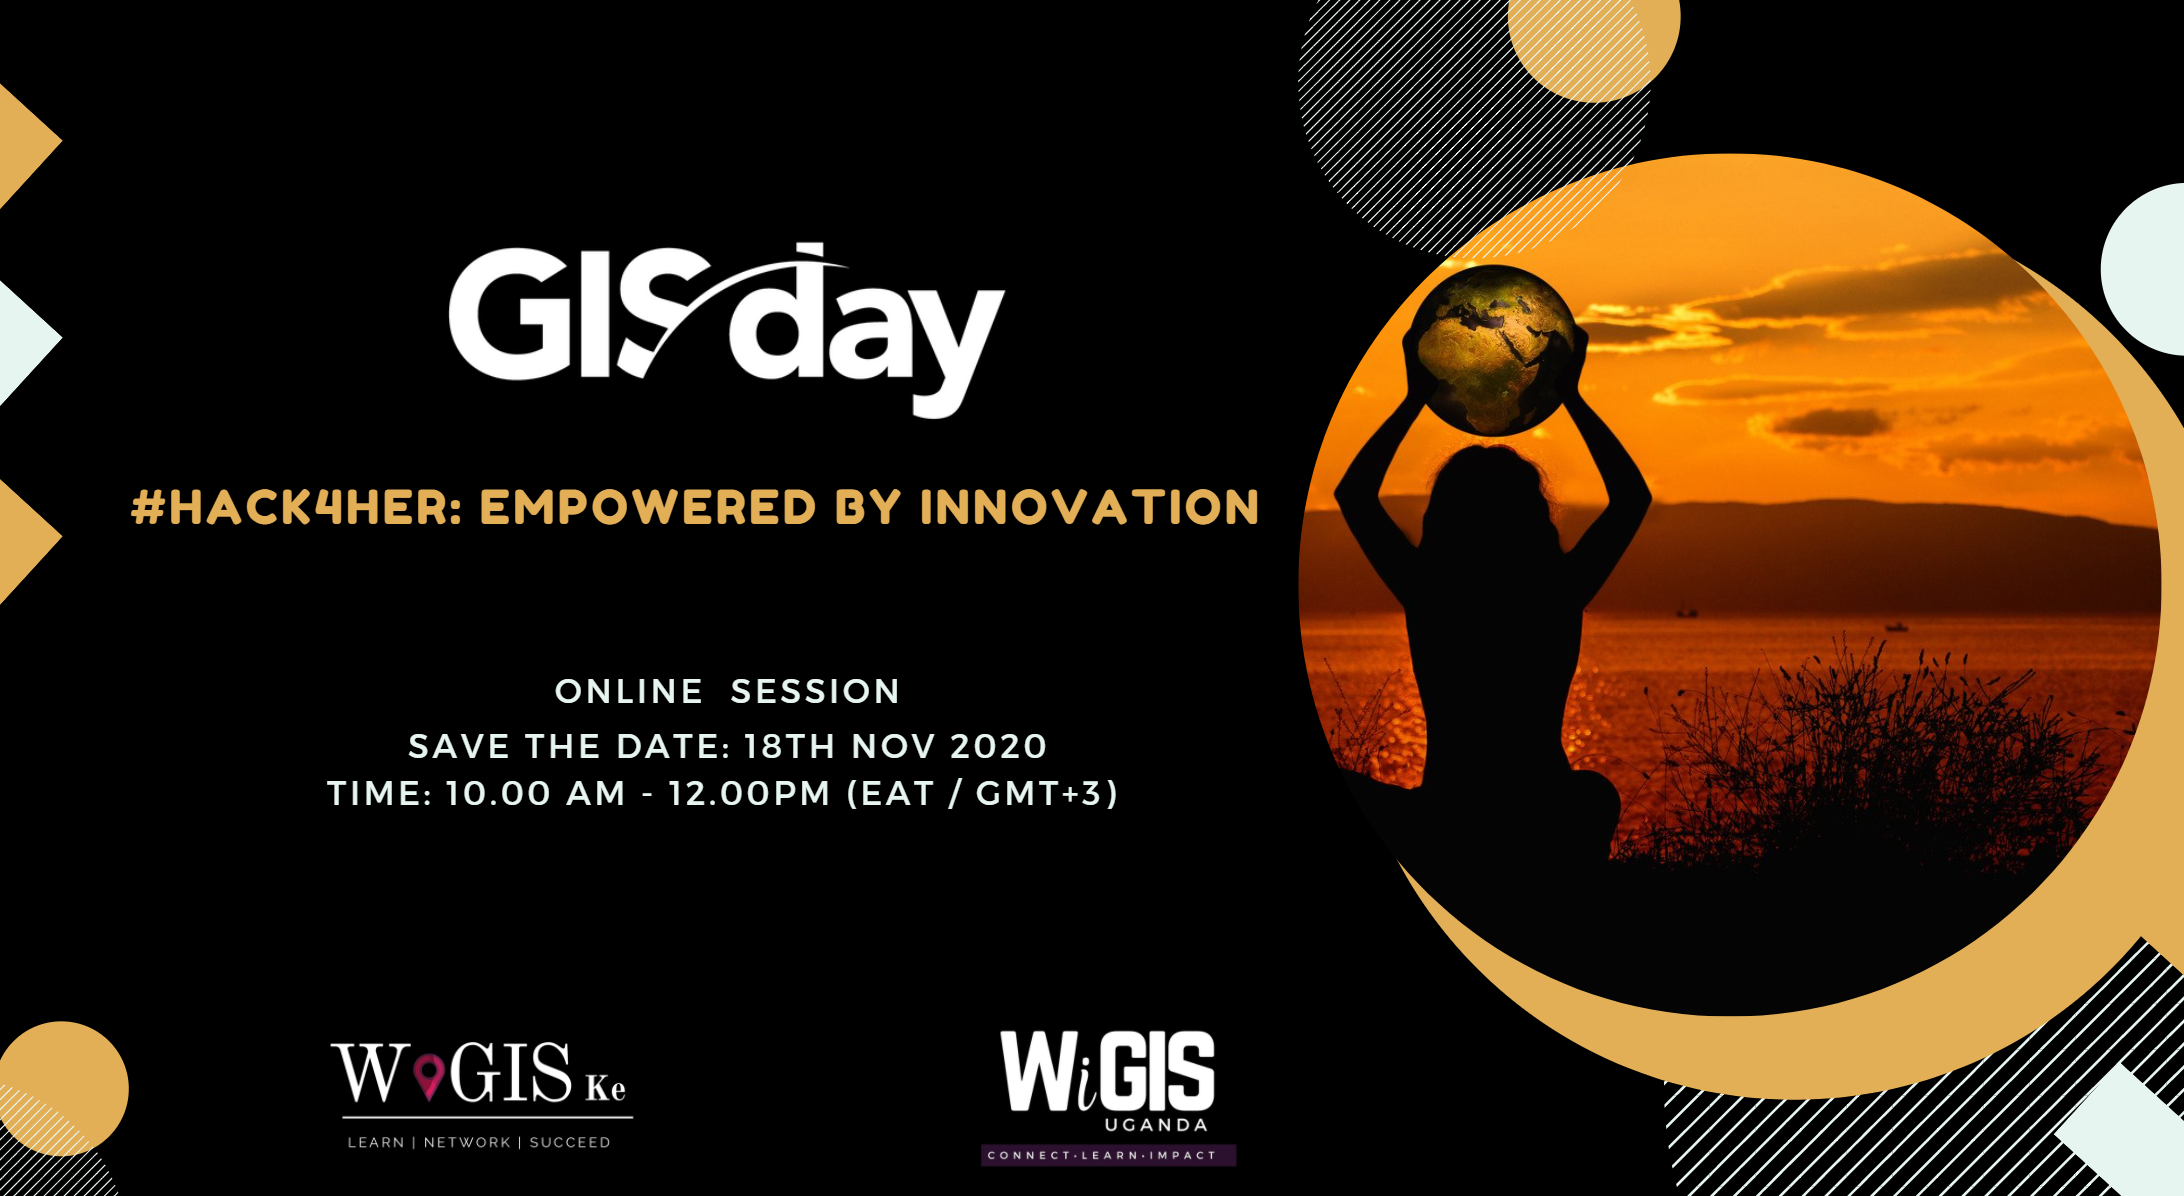 GIS Day #Hack4Her: Empowered by Innovation